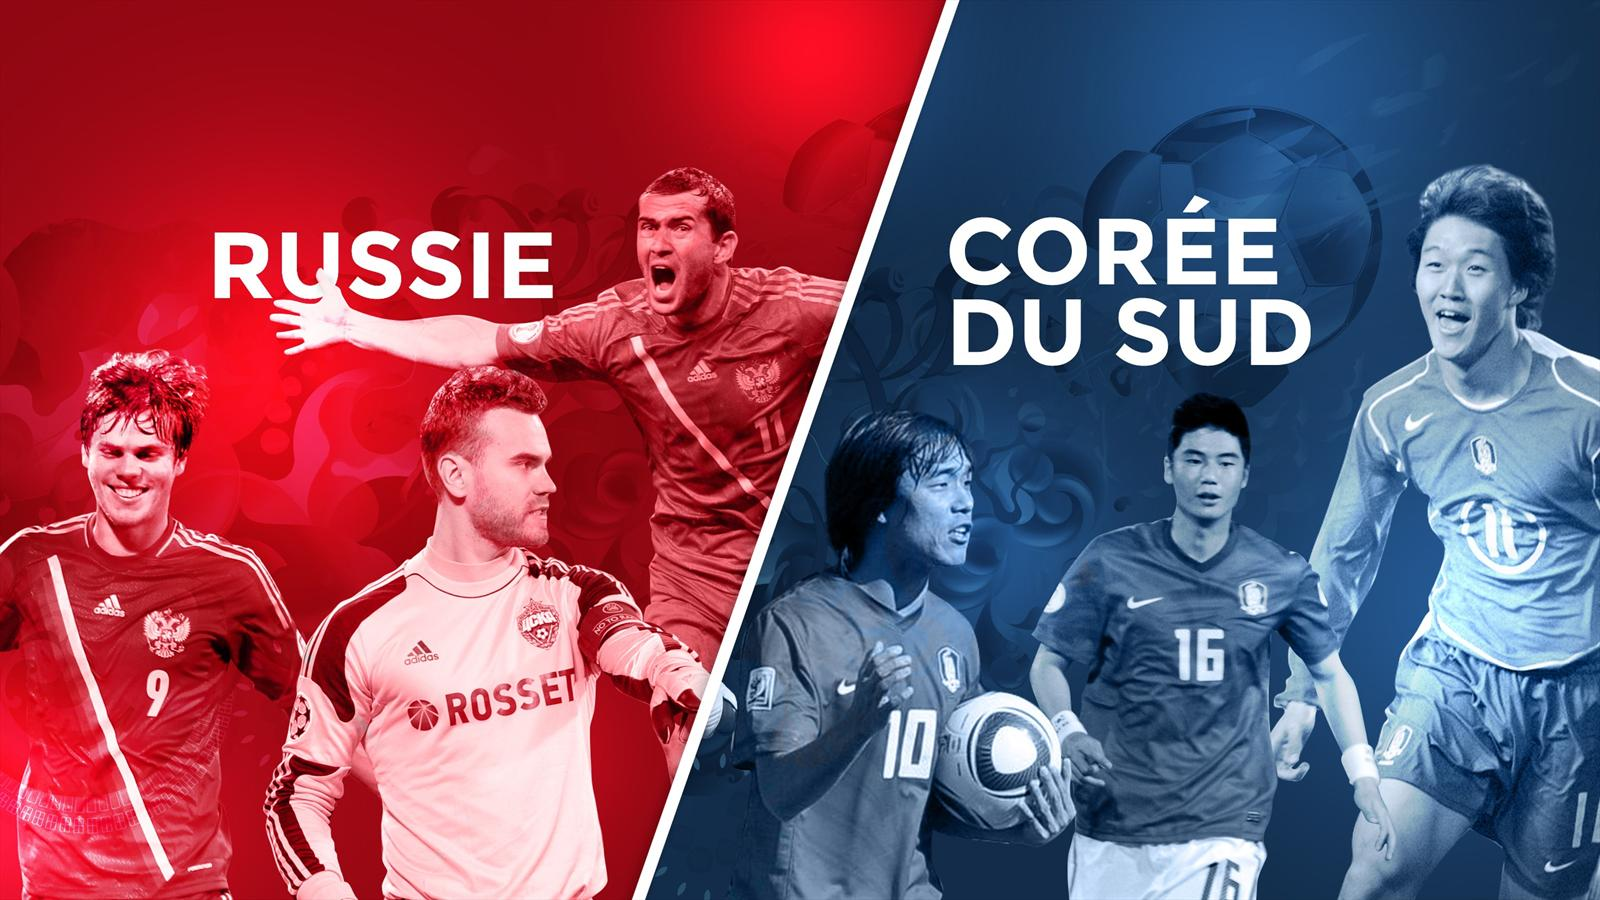 Match Russie Vs Corée du Sud retransmis en direct sur beIN Sport 1 et streaming sur Internet